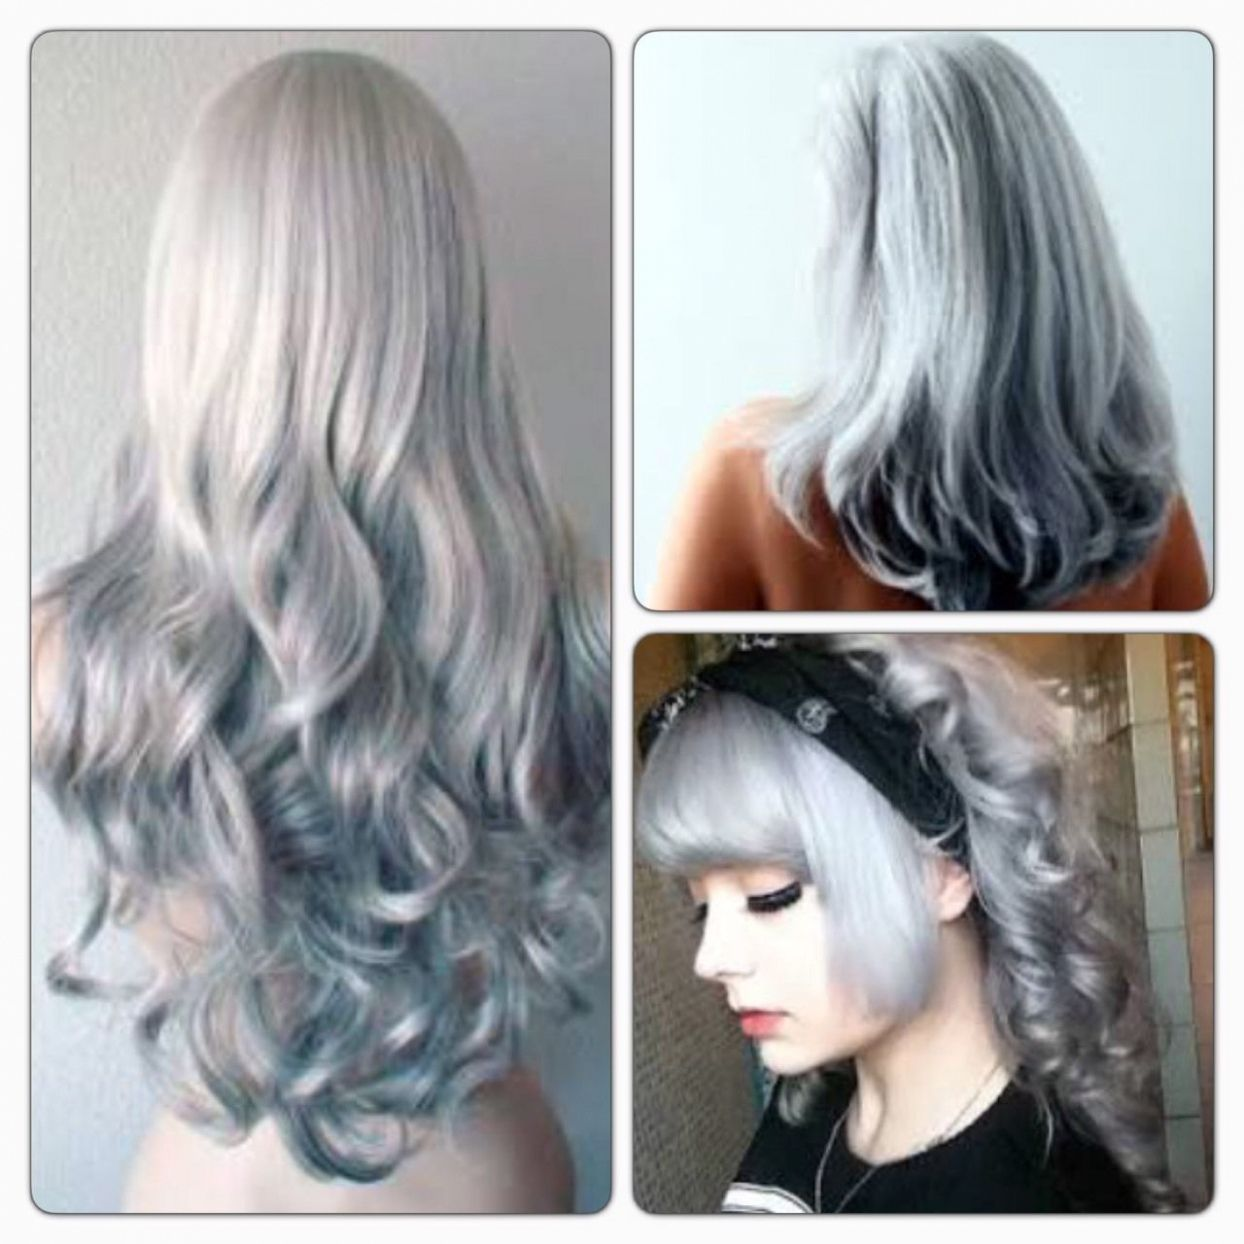 Gray color hair dye best hair color for black natural hair check gray color hair dye best hair color for black natural hair check more at http solutioingenieria Images